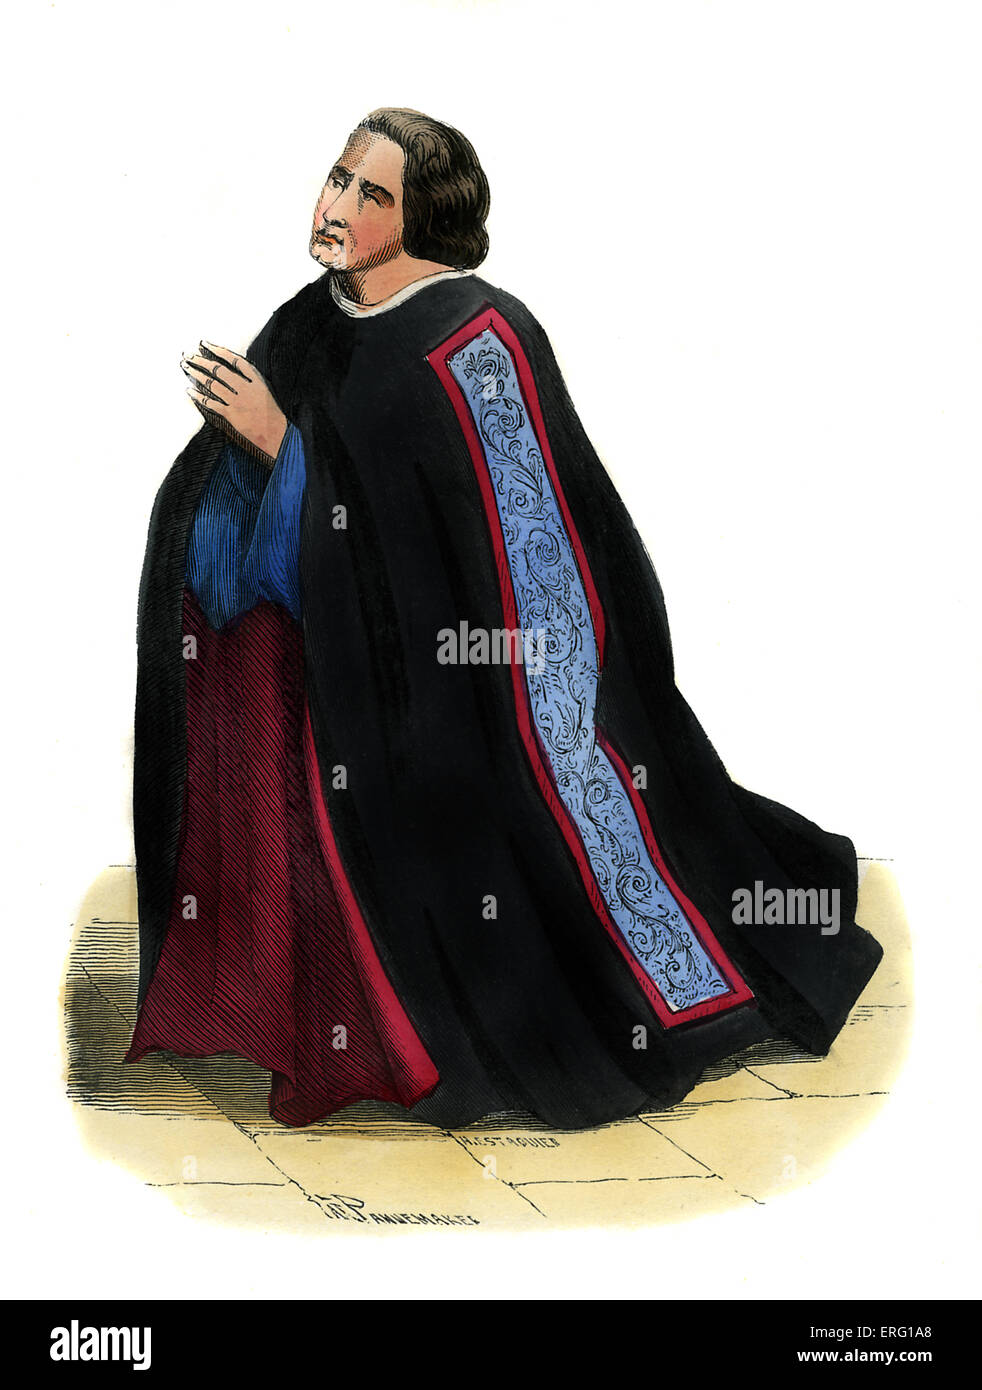 French dean (doyen) of merchant corporation - costume from 15th century. Shown in kneeling position, wearing black - Stock Image